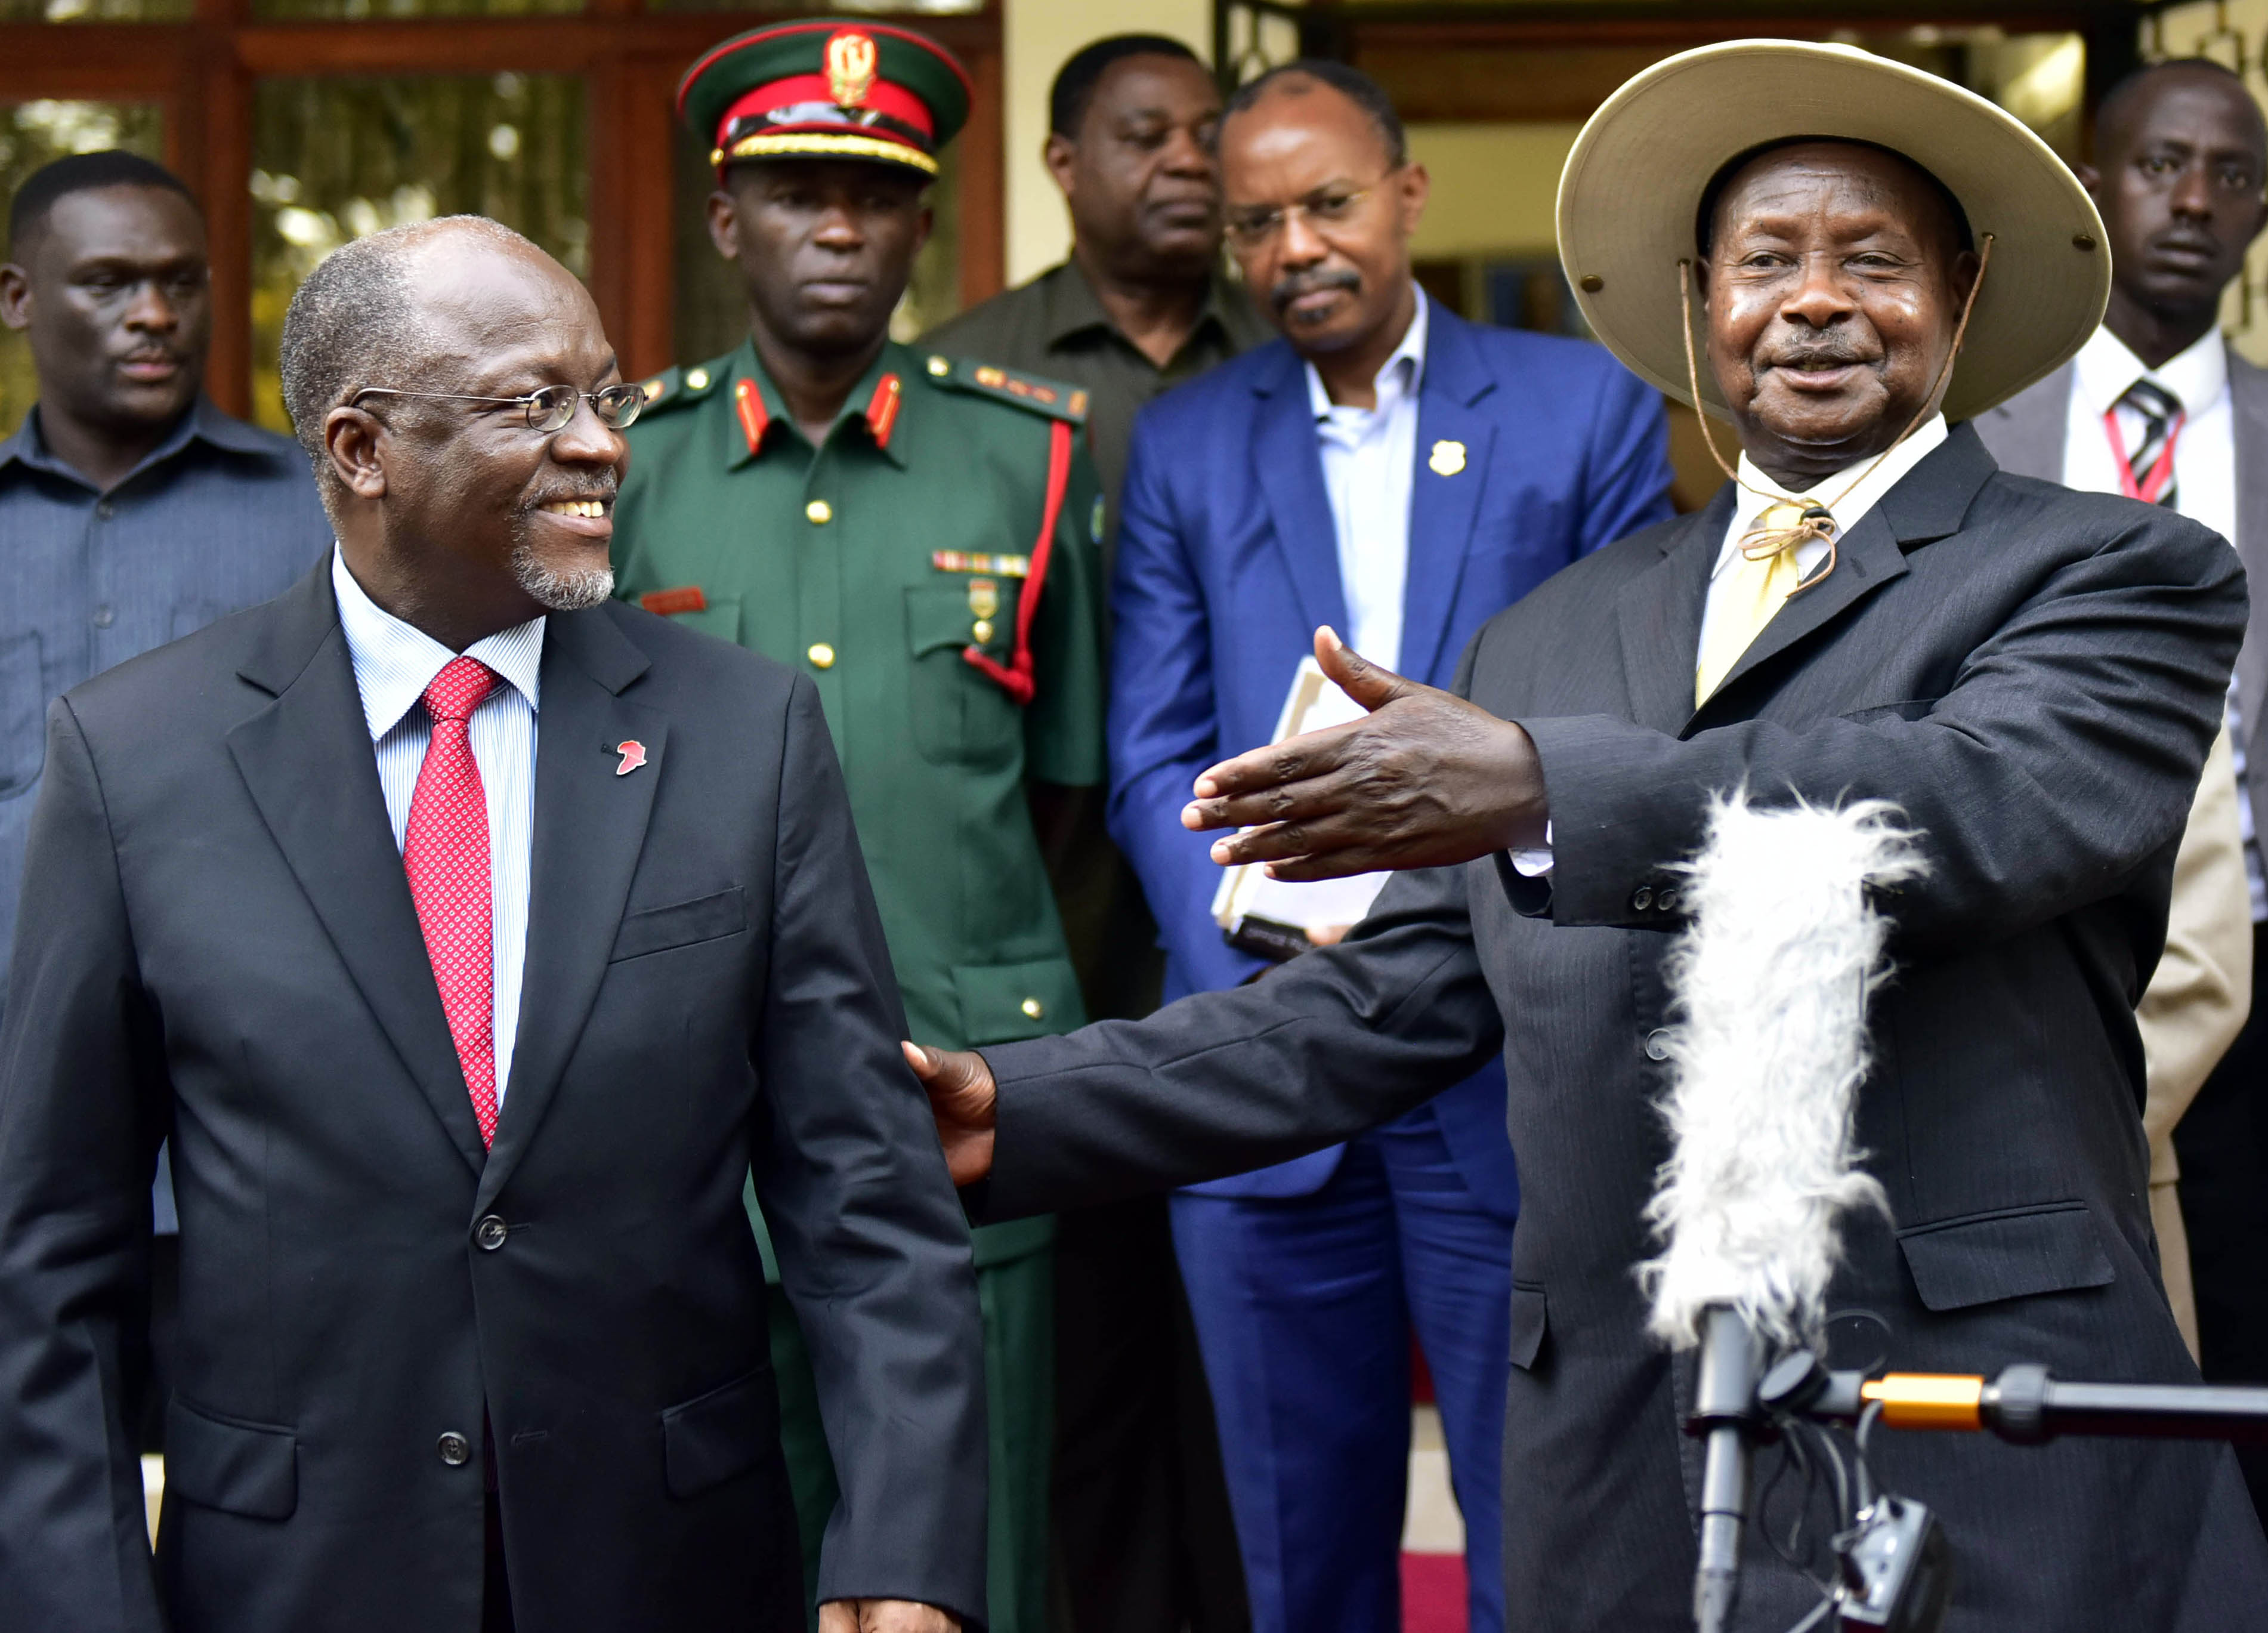 Museveni-in-Arusha-EAC-Summit-01